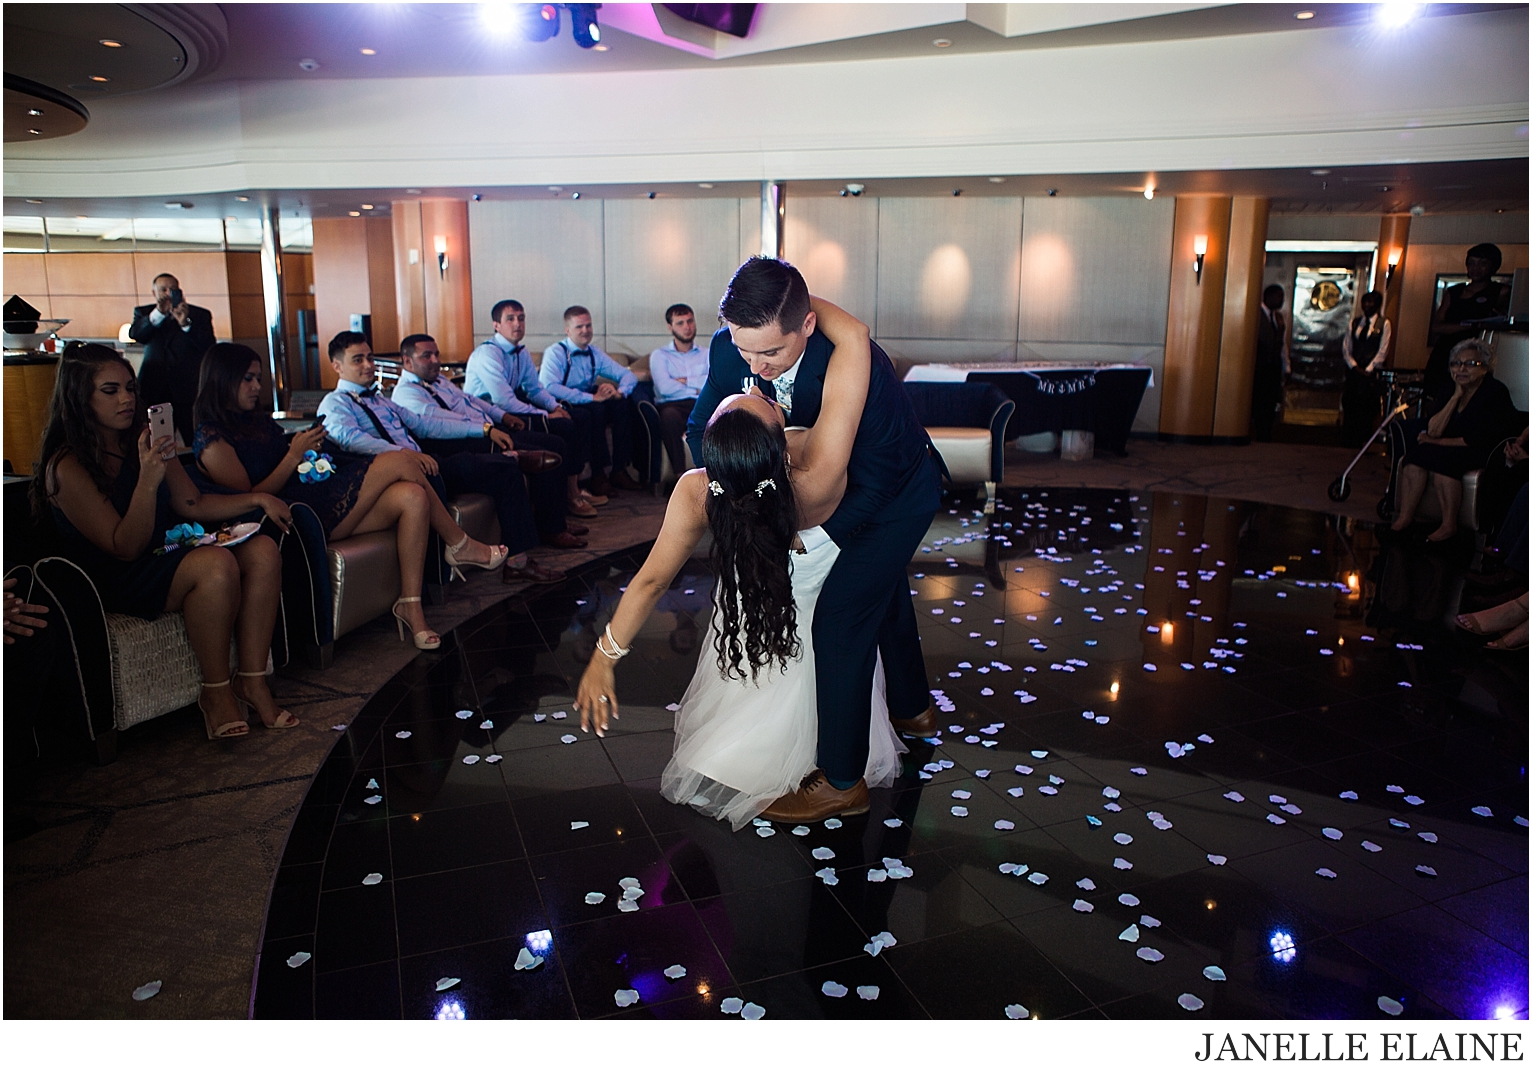 white wedding-royal caribbean-janelle elaine photography-443.jpg